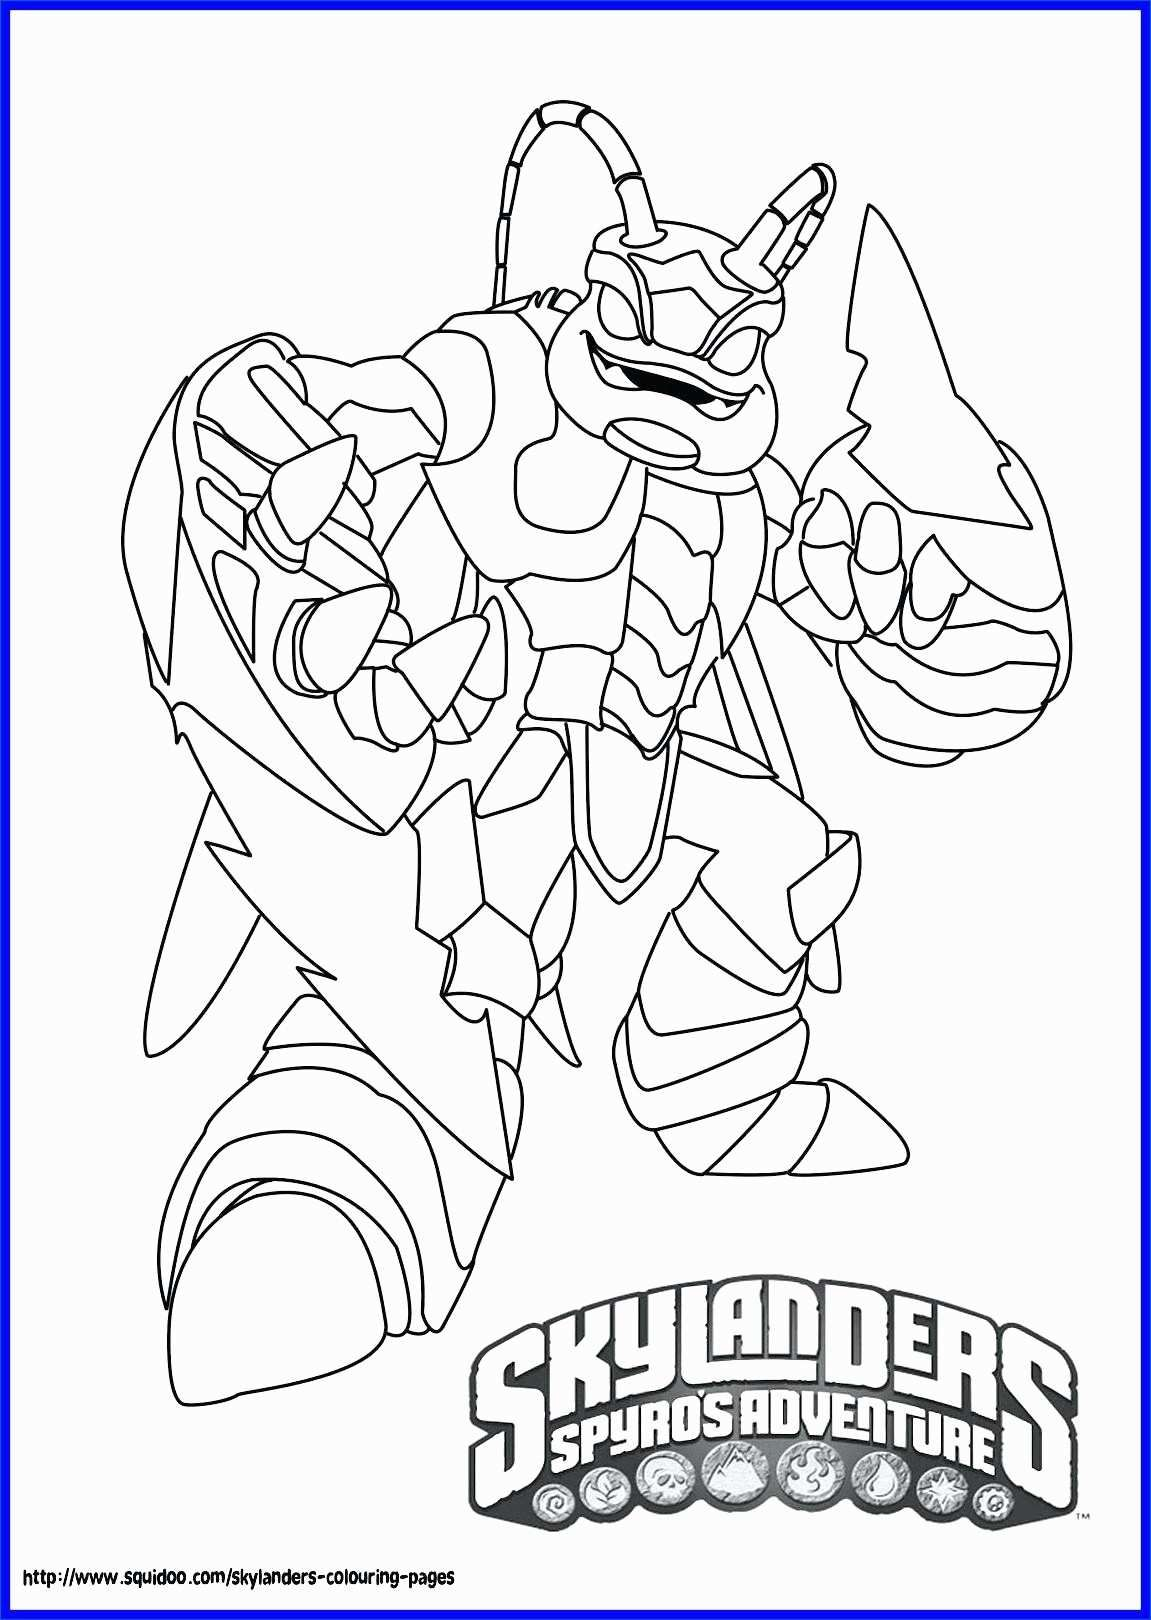 Video Game Coloring Pages Coloring Pages Games Coloring Pages Pw